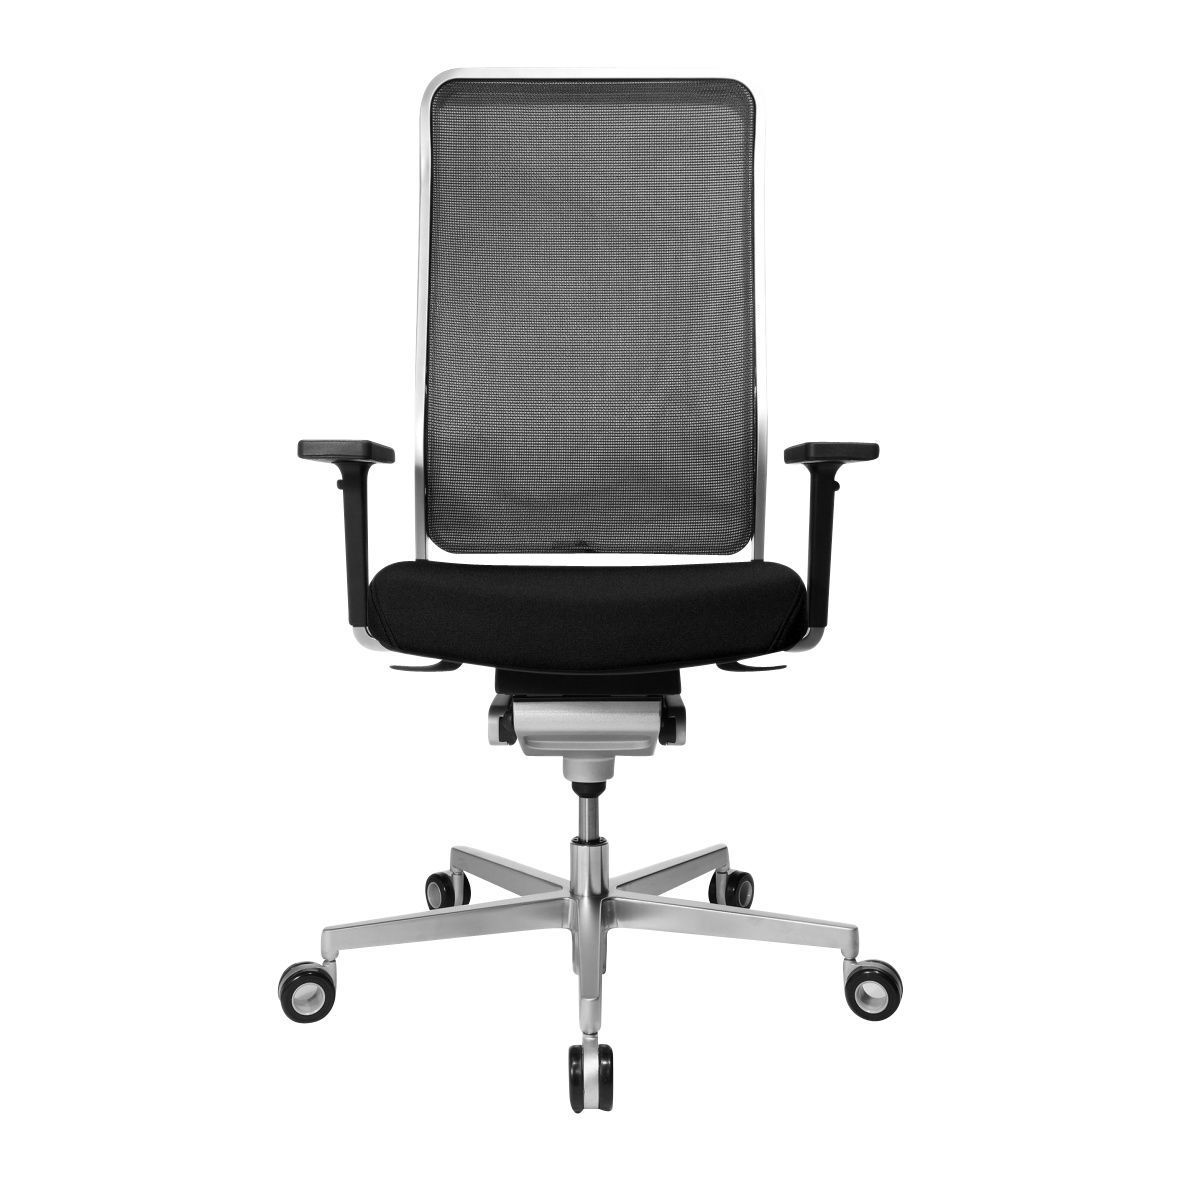 High office chair - Wagner W1 High Office Chair Black With Armrest Star Base Matt Chrome